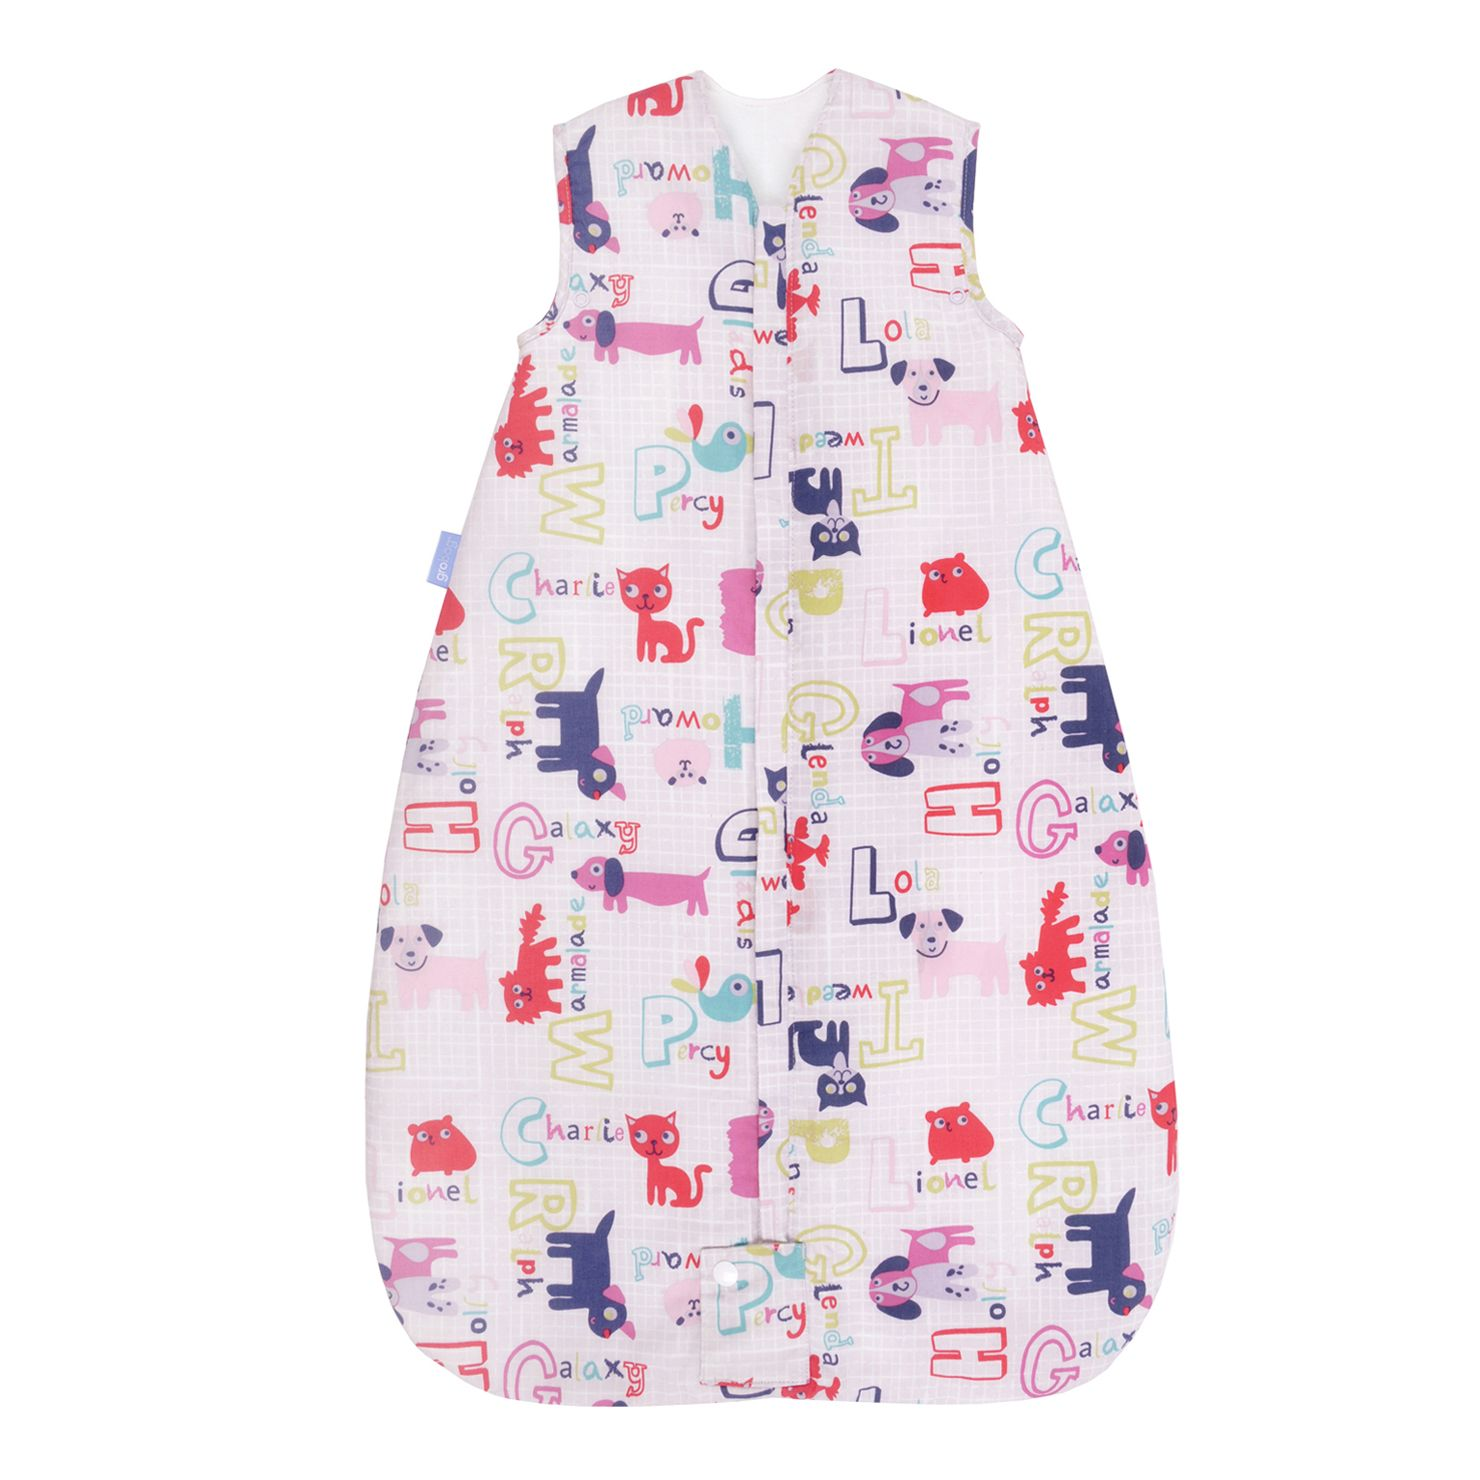 All Designs and Sizes The Gro Company Official Travel Grobag Baby Sleeping Bag